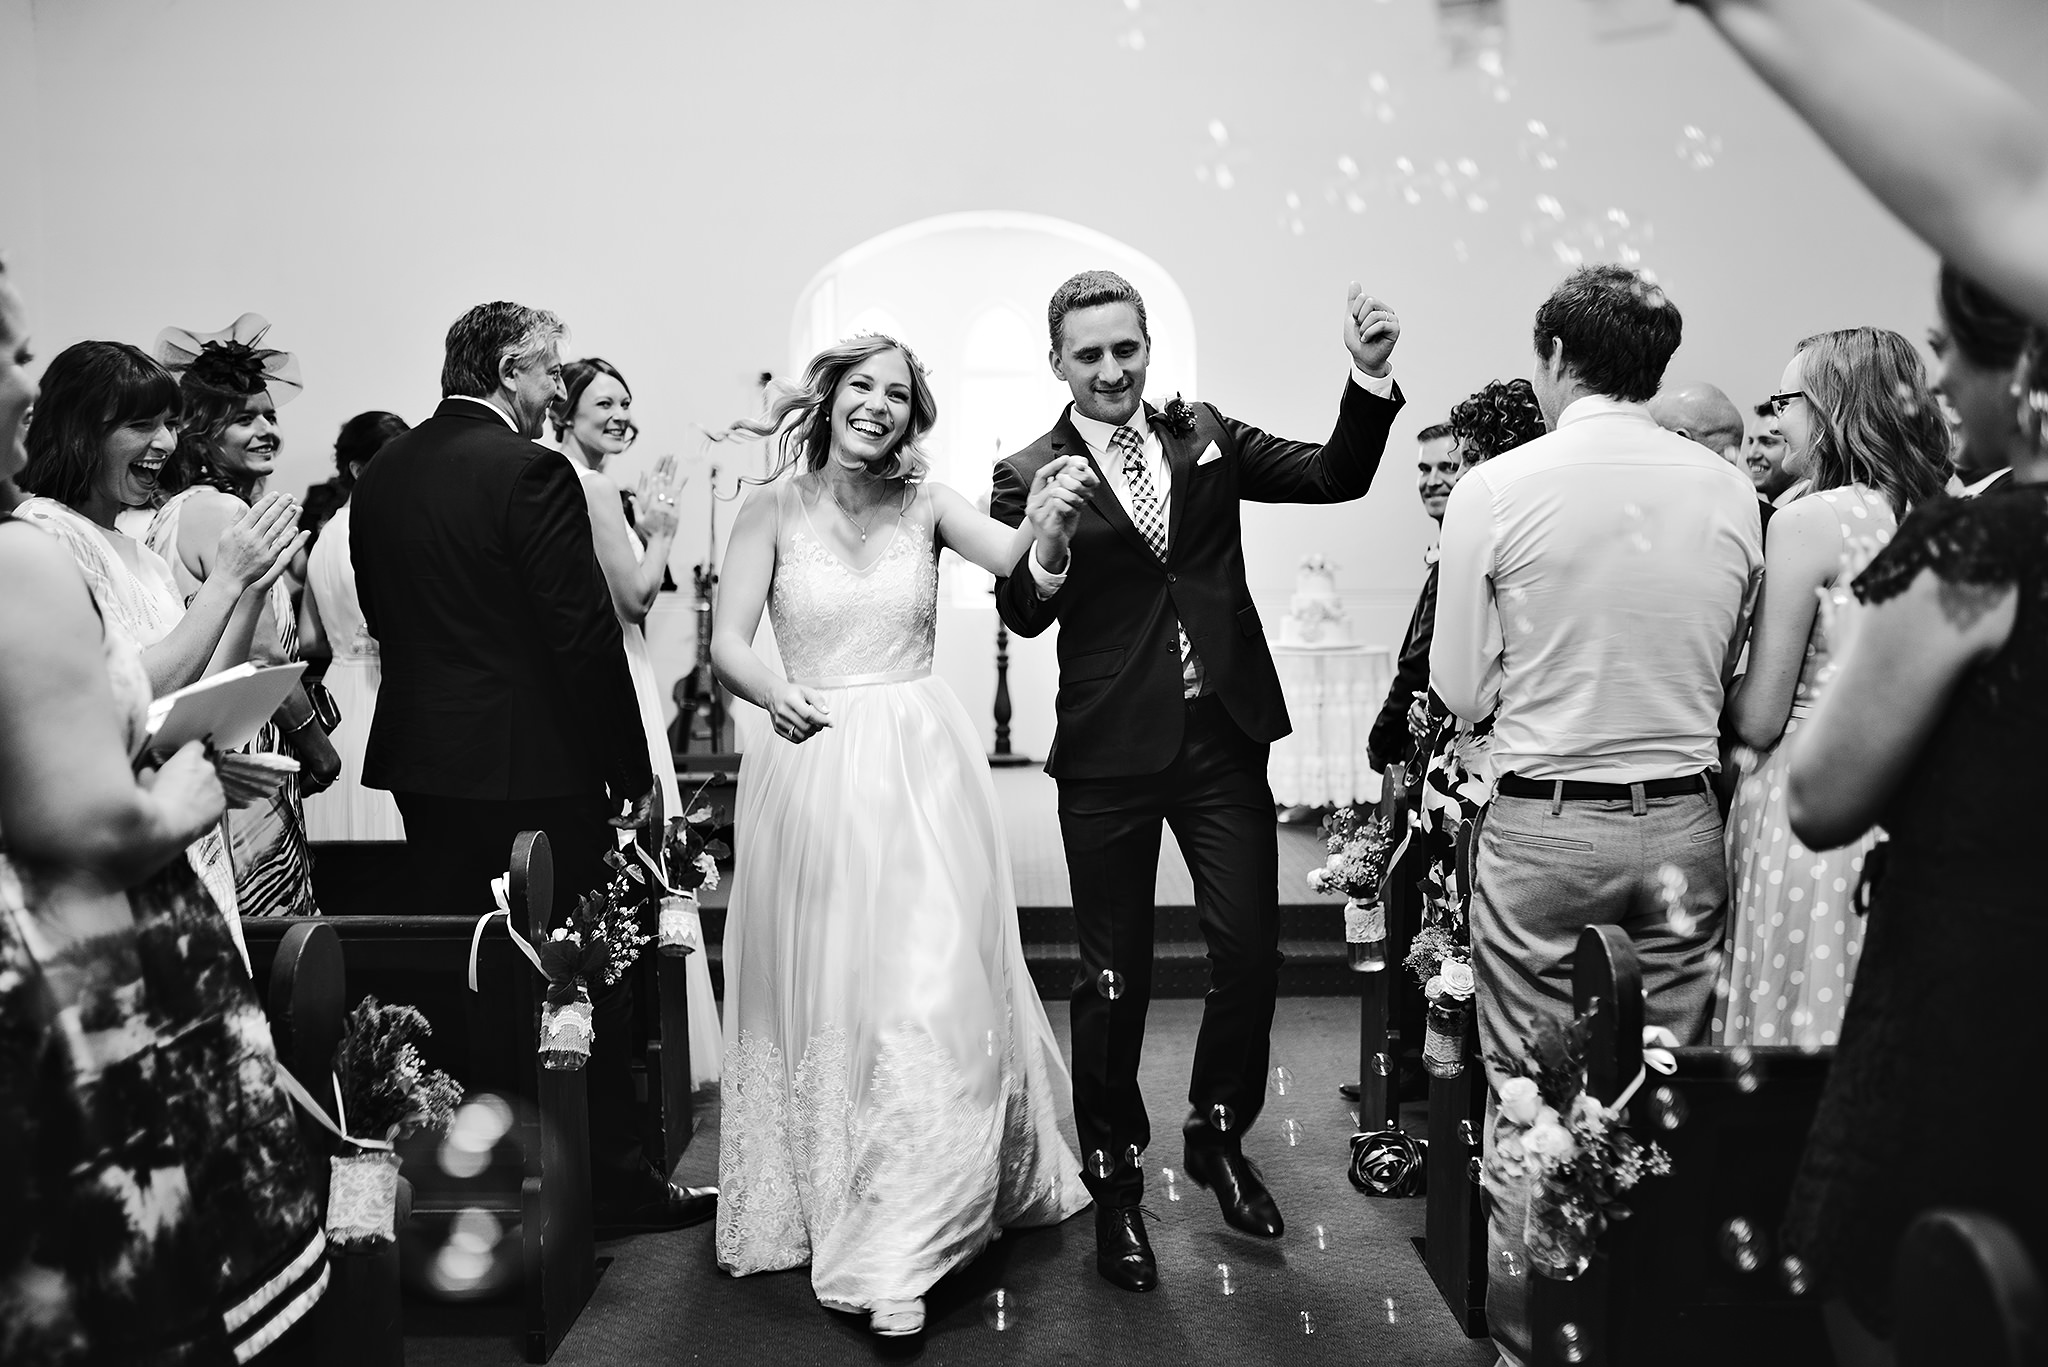 63 church wedding bride and groom walking down aisle with bubbles.JPG